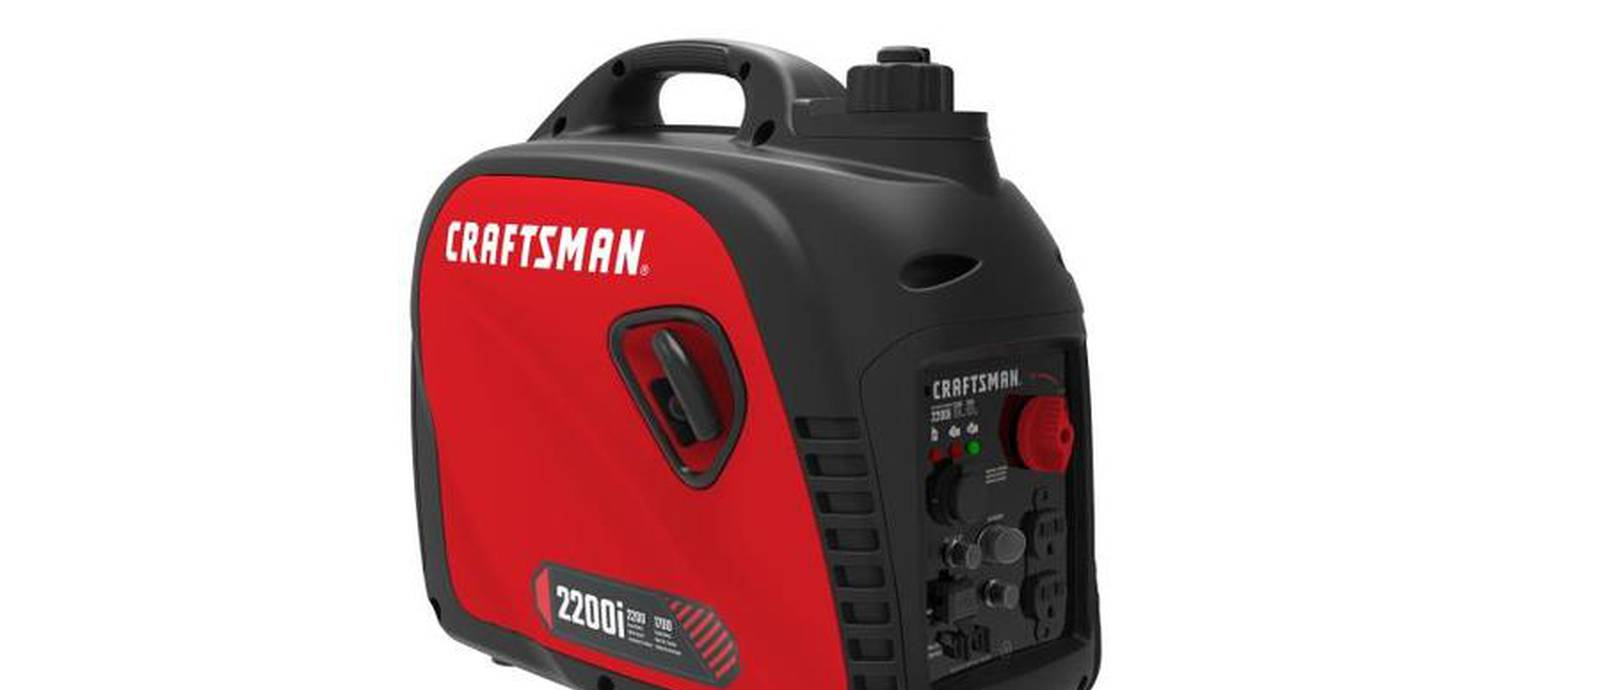 Craftsman 2200 Watt Inverter Gasoline Generator